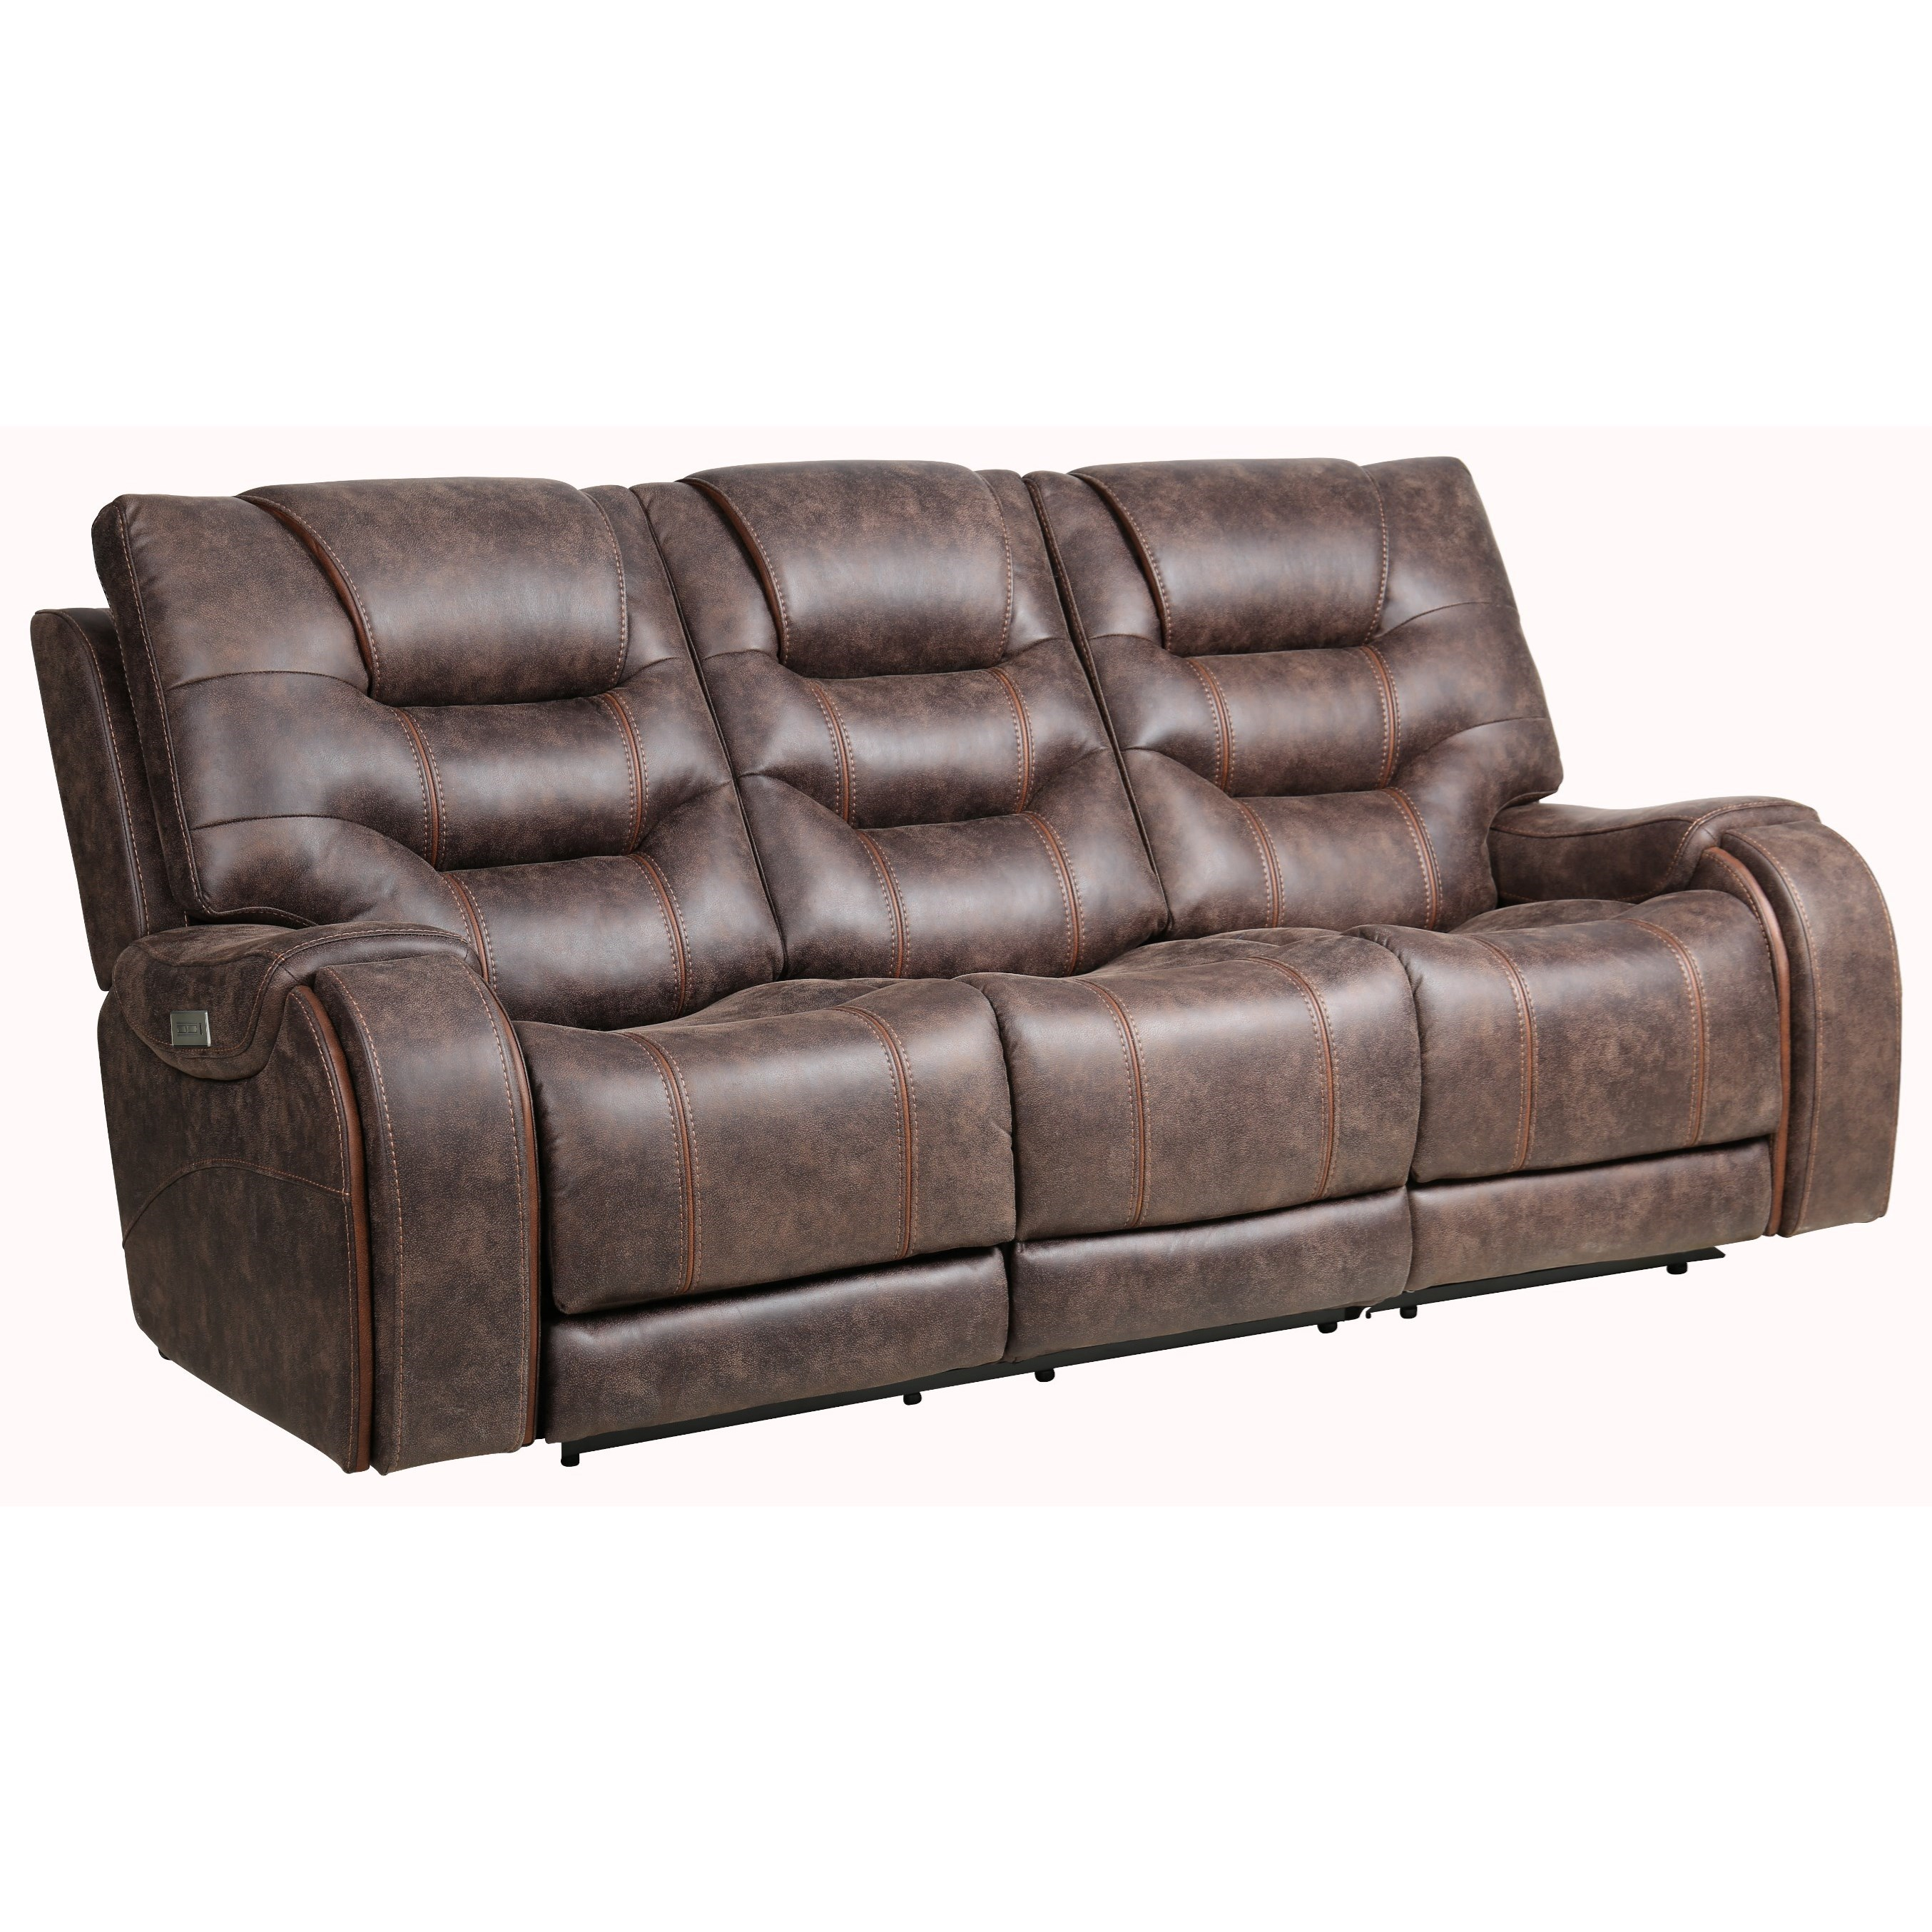 2-Piece Power Reclining Sofa w/ Pwr Headrest